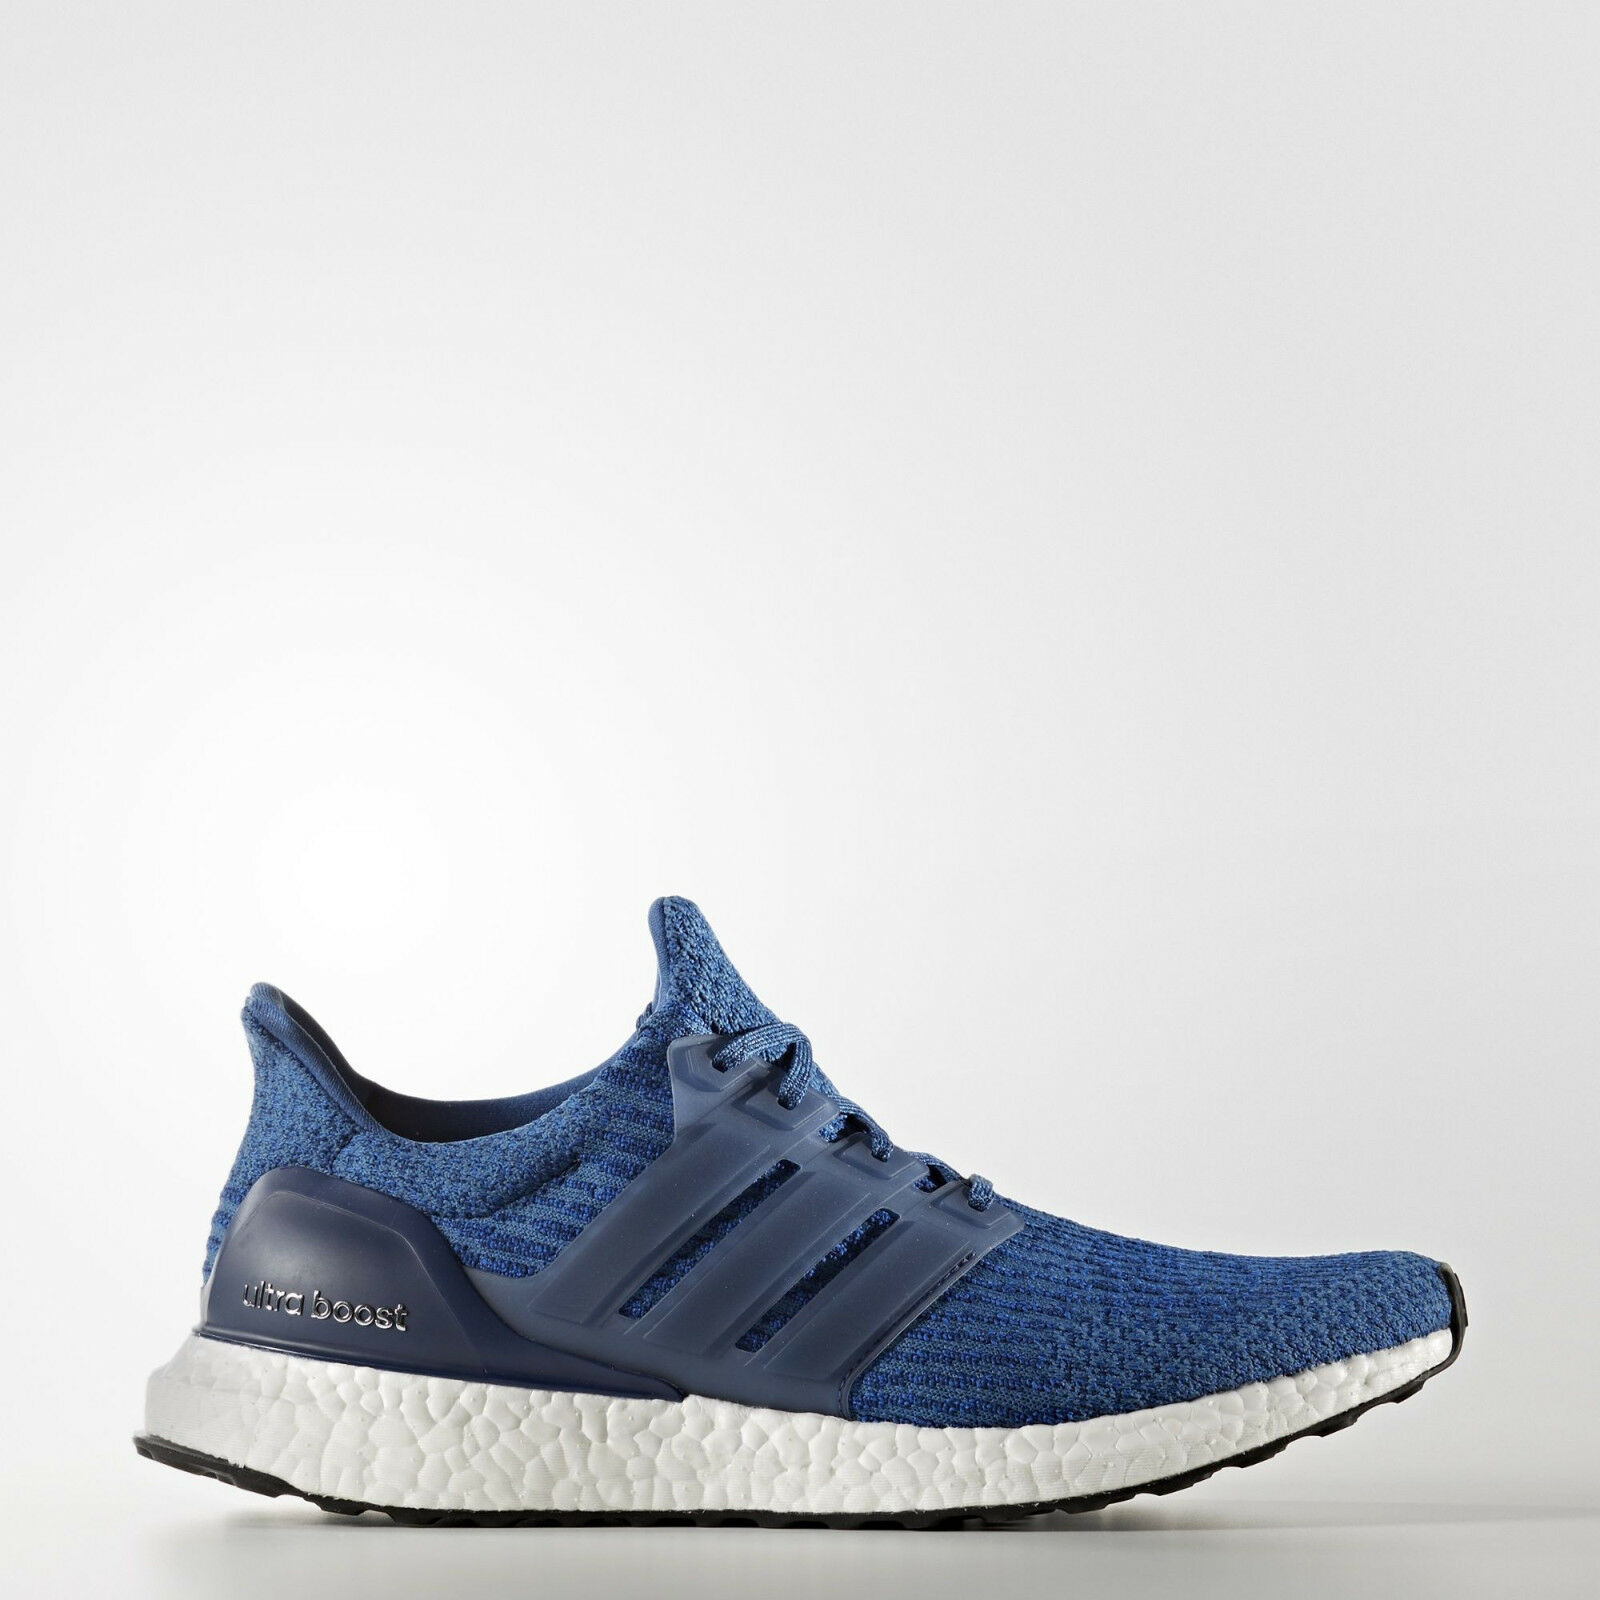 Adidas Mens Ultra Boost Mystery bluee Running shoes BA8844 UltraBOOST